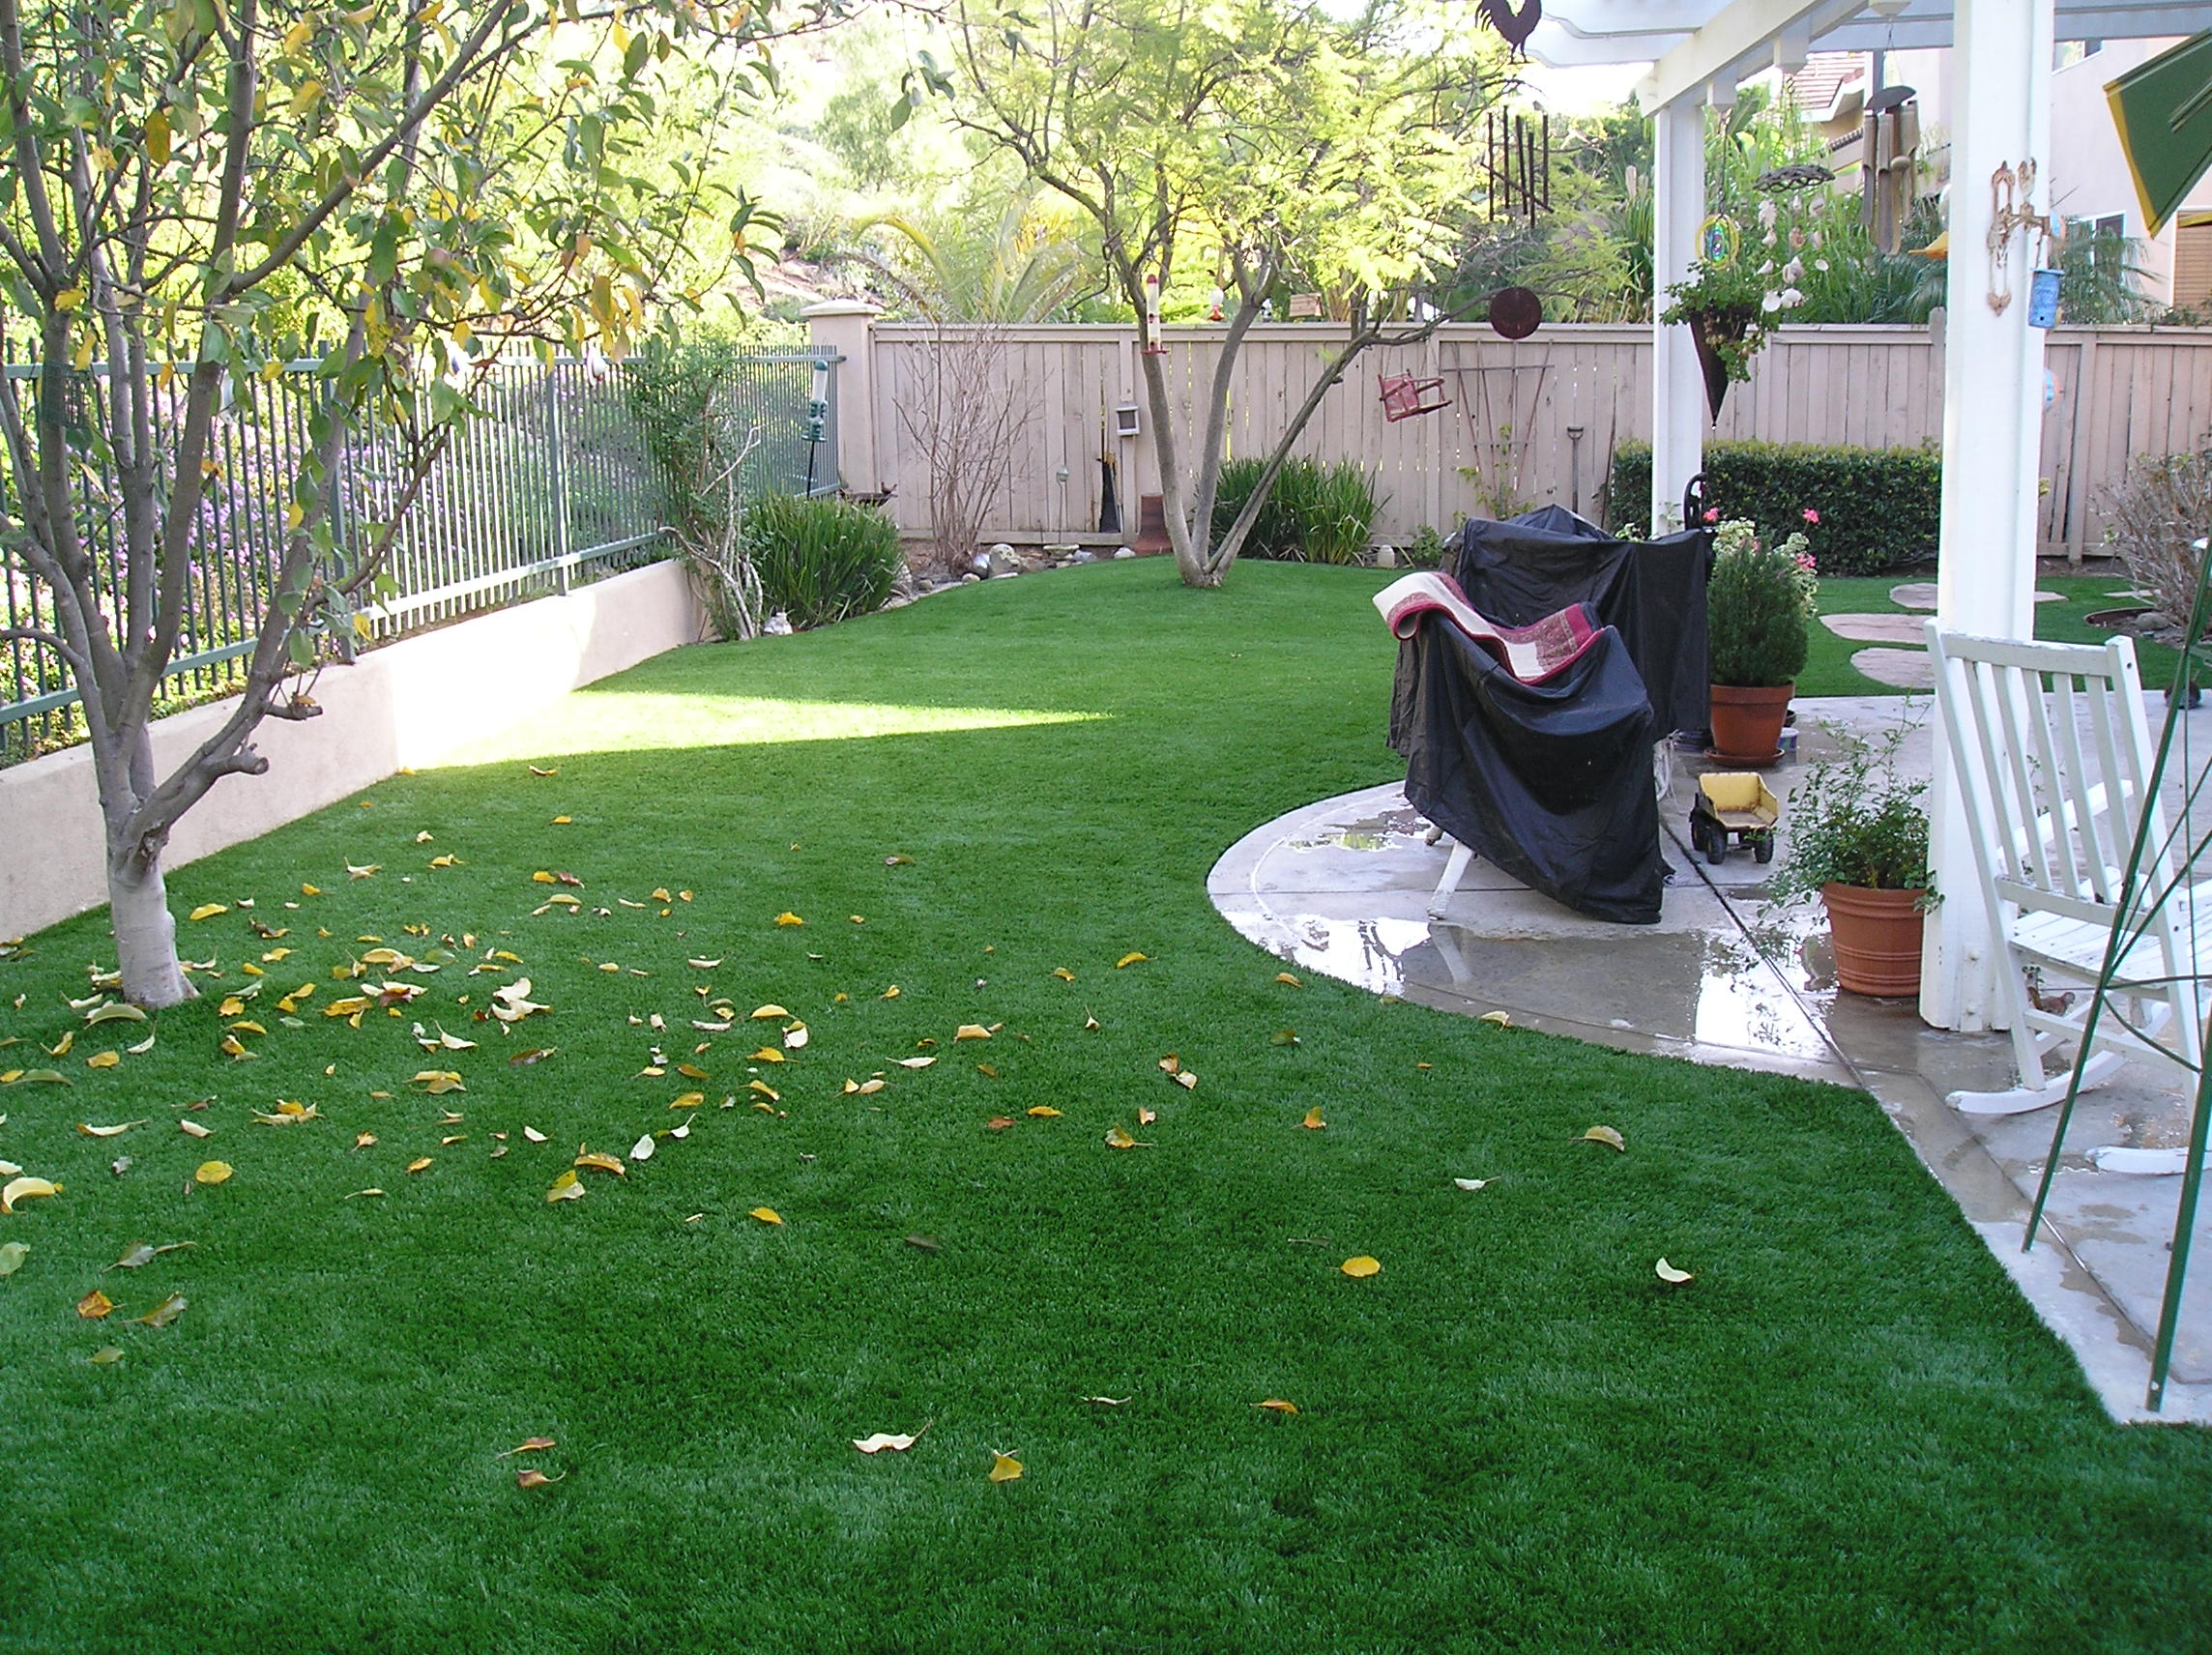 Super Natural 60 artificial lawn,synthetic lawn,fake lawn,turf lawn,fake grass lawn,artificial turf,synthetic turf,artificial turf installation,how to install artificial turf,used artificial turf